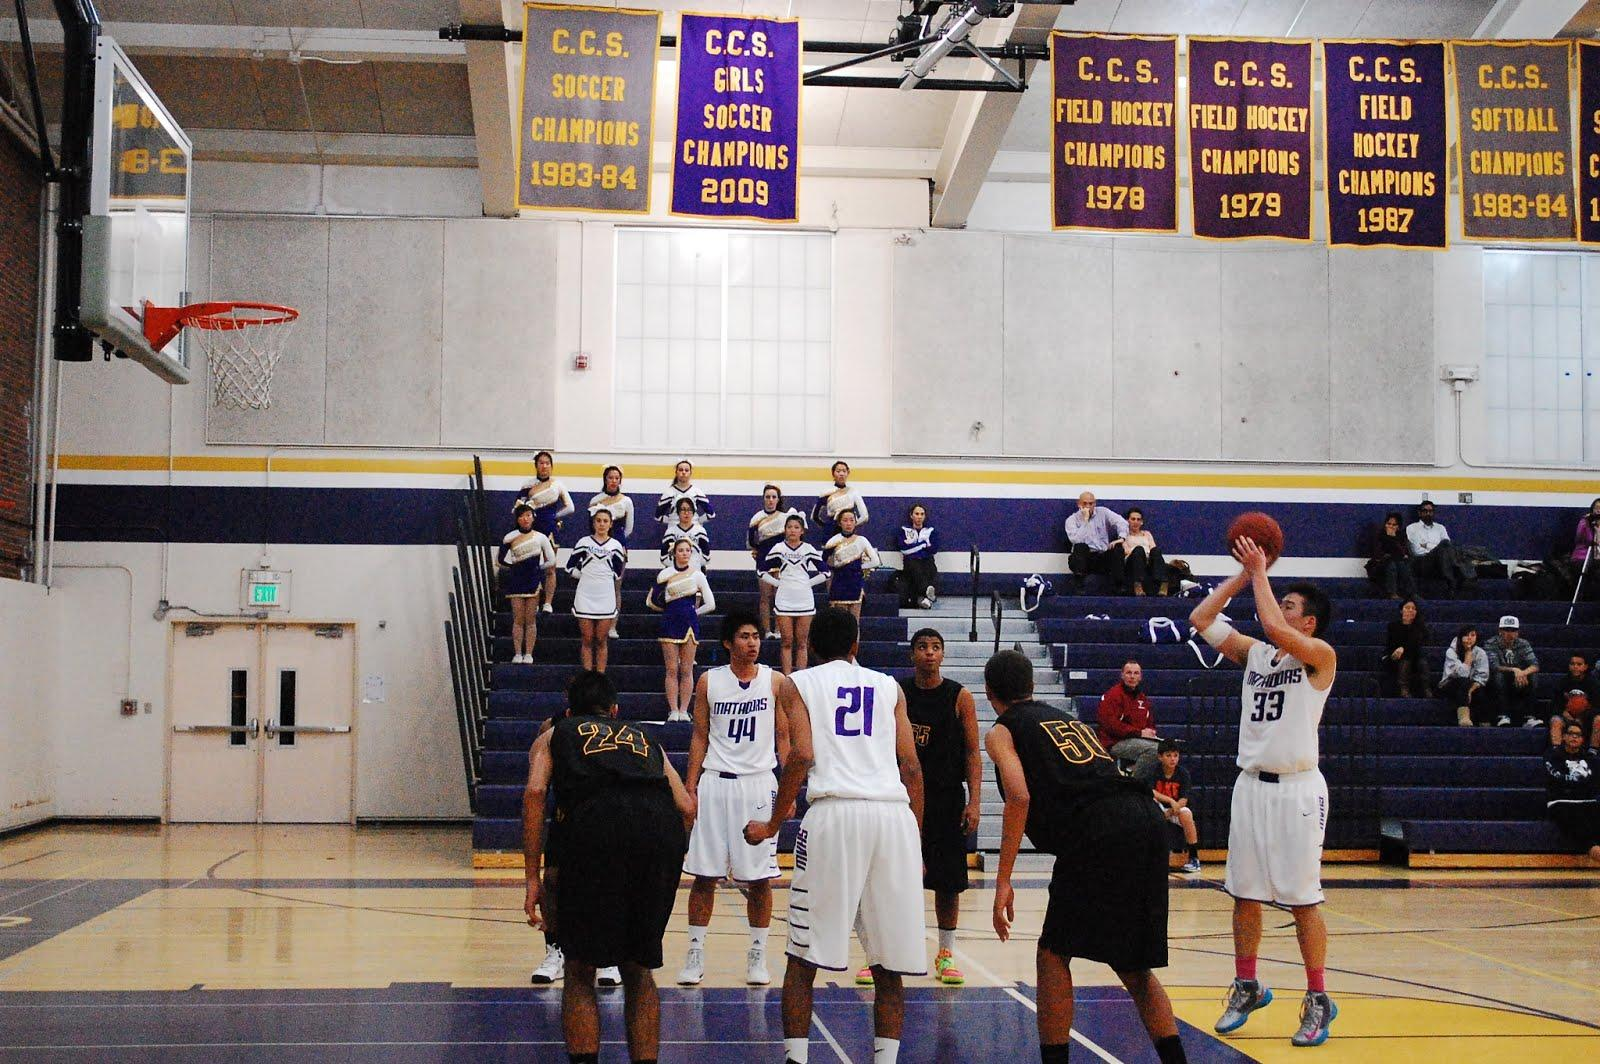 Senior Alex Soong shoots a free throw in MVHS's Jan. 15 game against Wilcox High School. Soong's contribution of 11 points and 8 rebounds was not enough as the Matadors lost 57-45. Photo by Robert Sulgit.